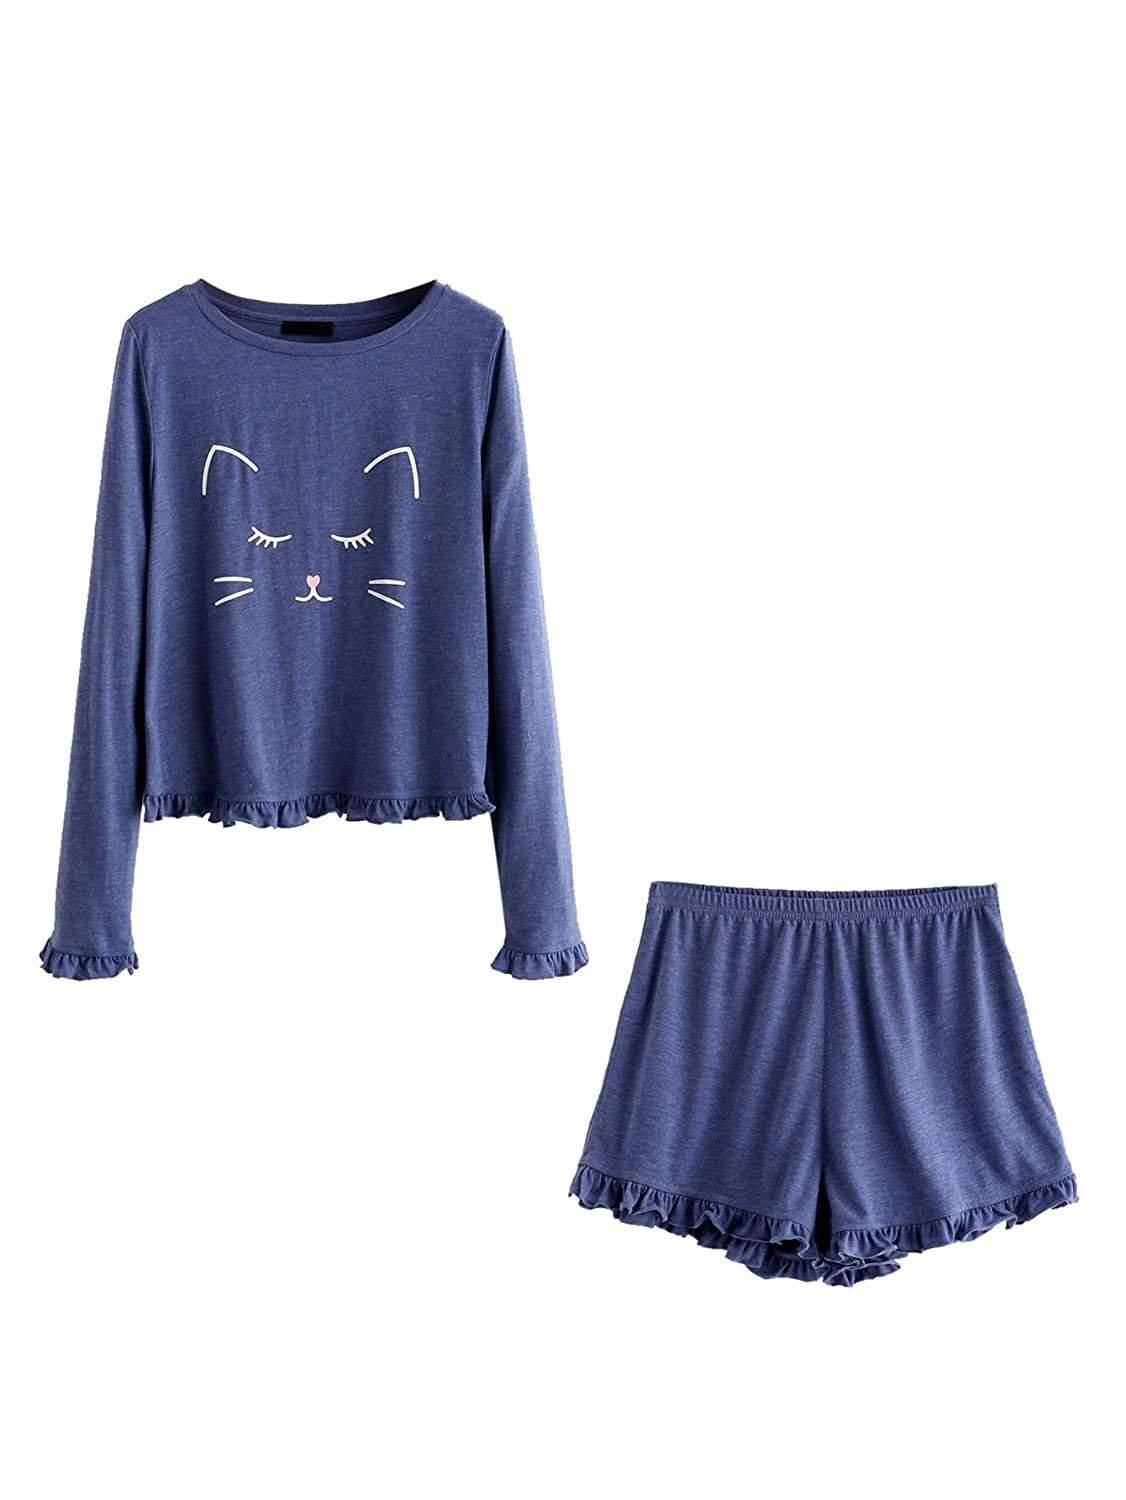 bluee DIDK Women's Cat Print Cuffed Top and Polka Dot Shorts Pajama Set